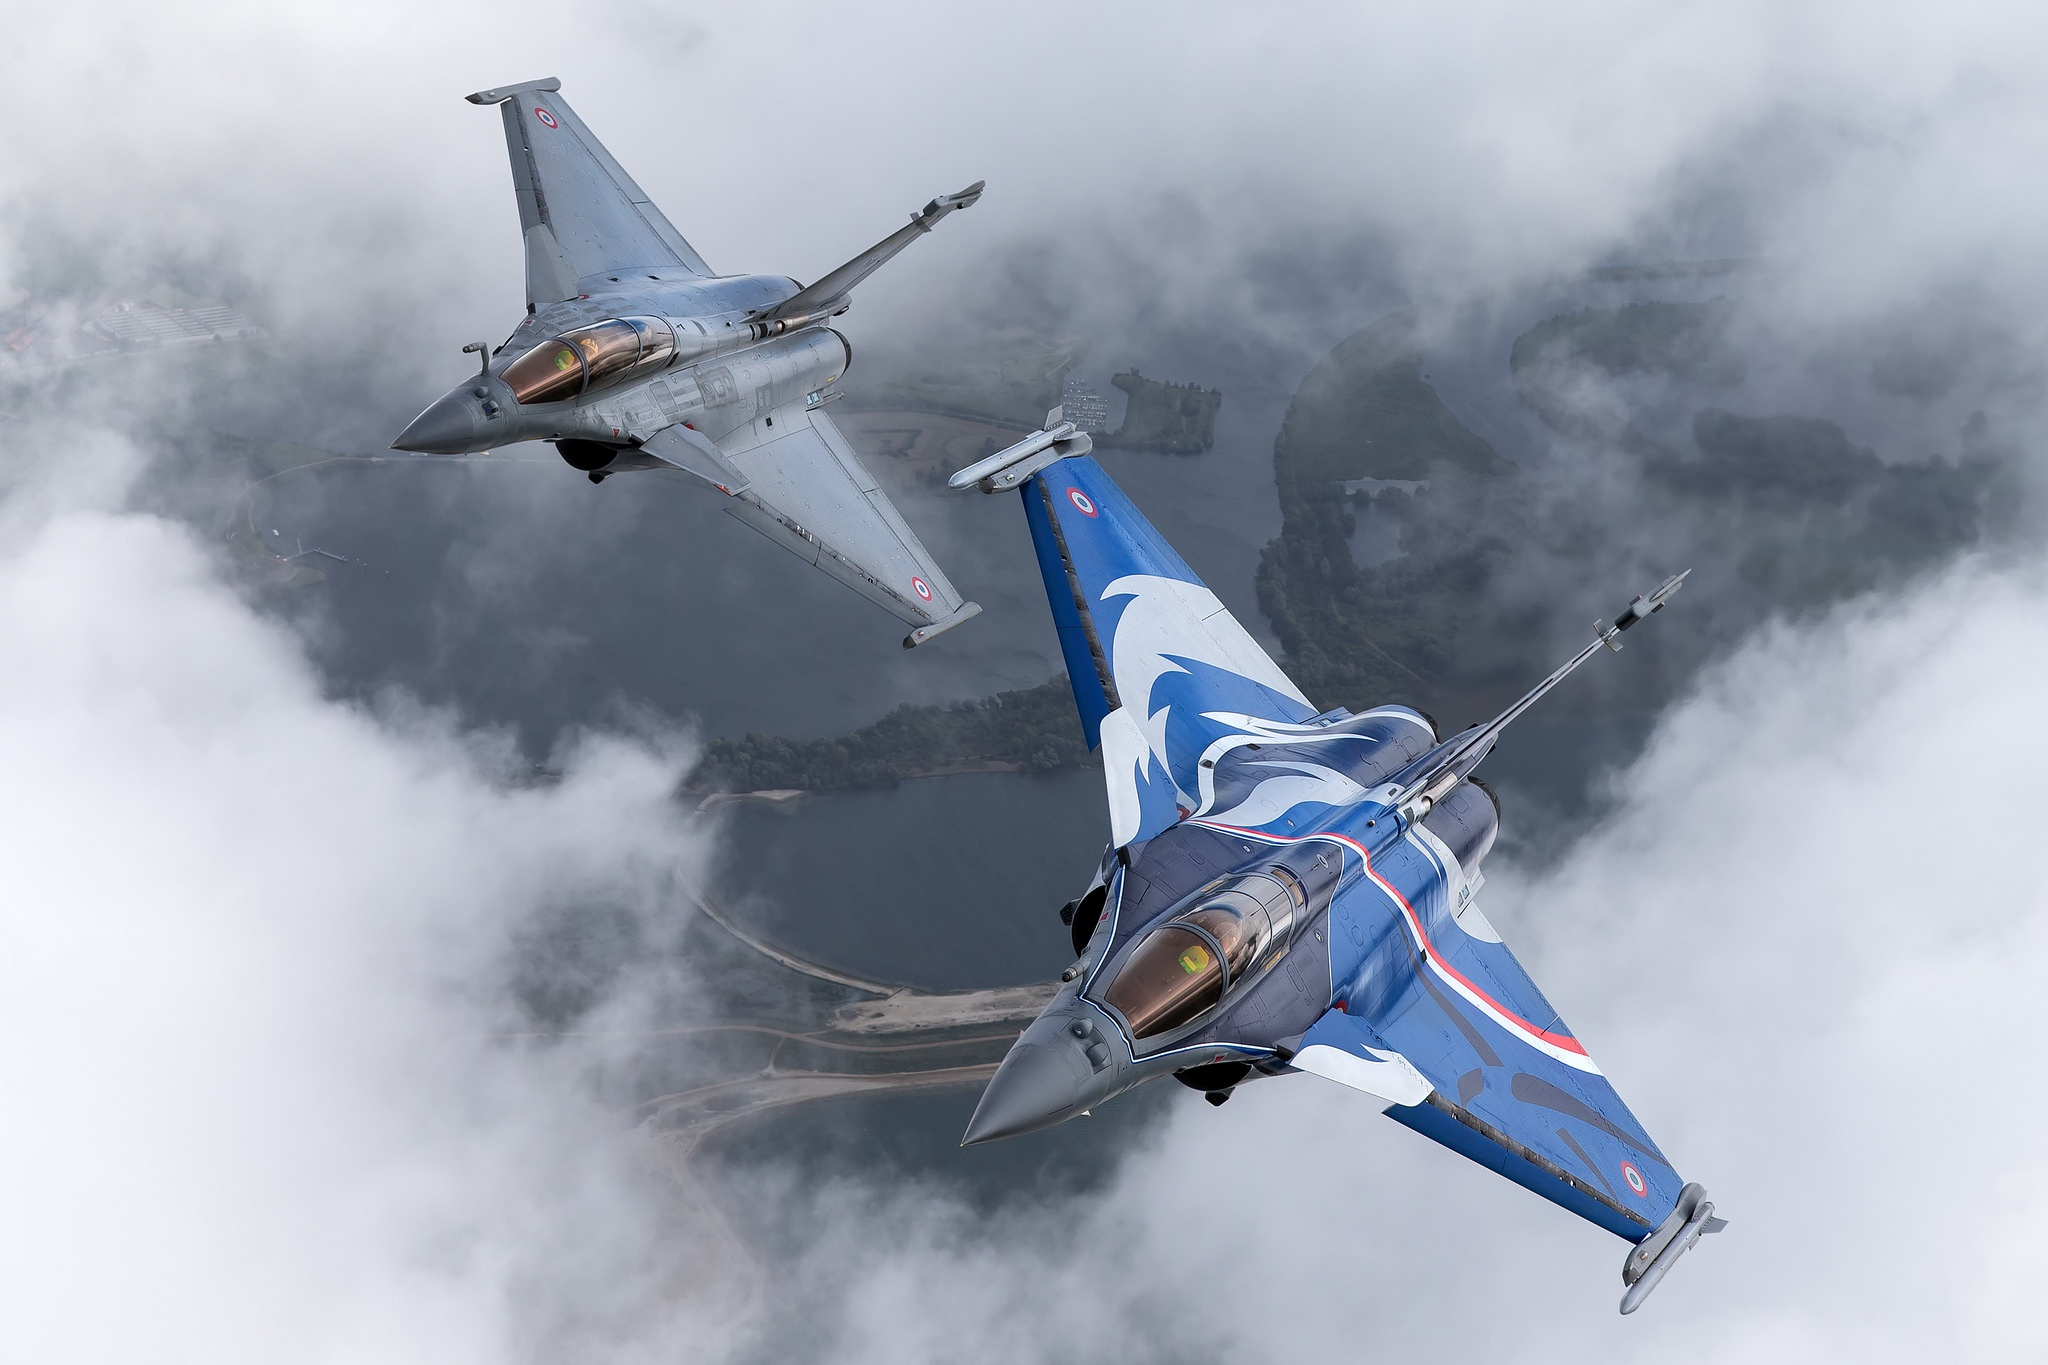 Dassault Rafale HD Wallpaper | Background Image | 2048x1365 | ID:911499 - Wallpaper Abyss